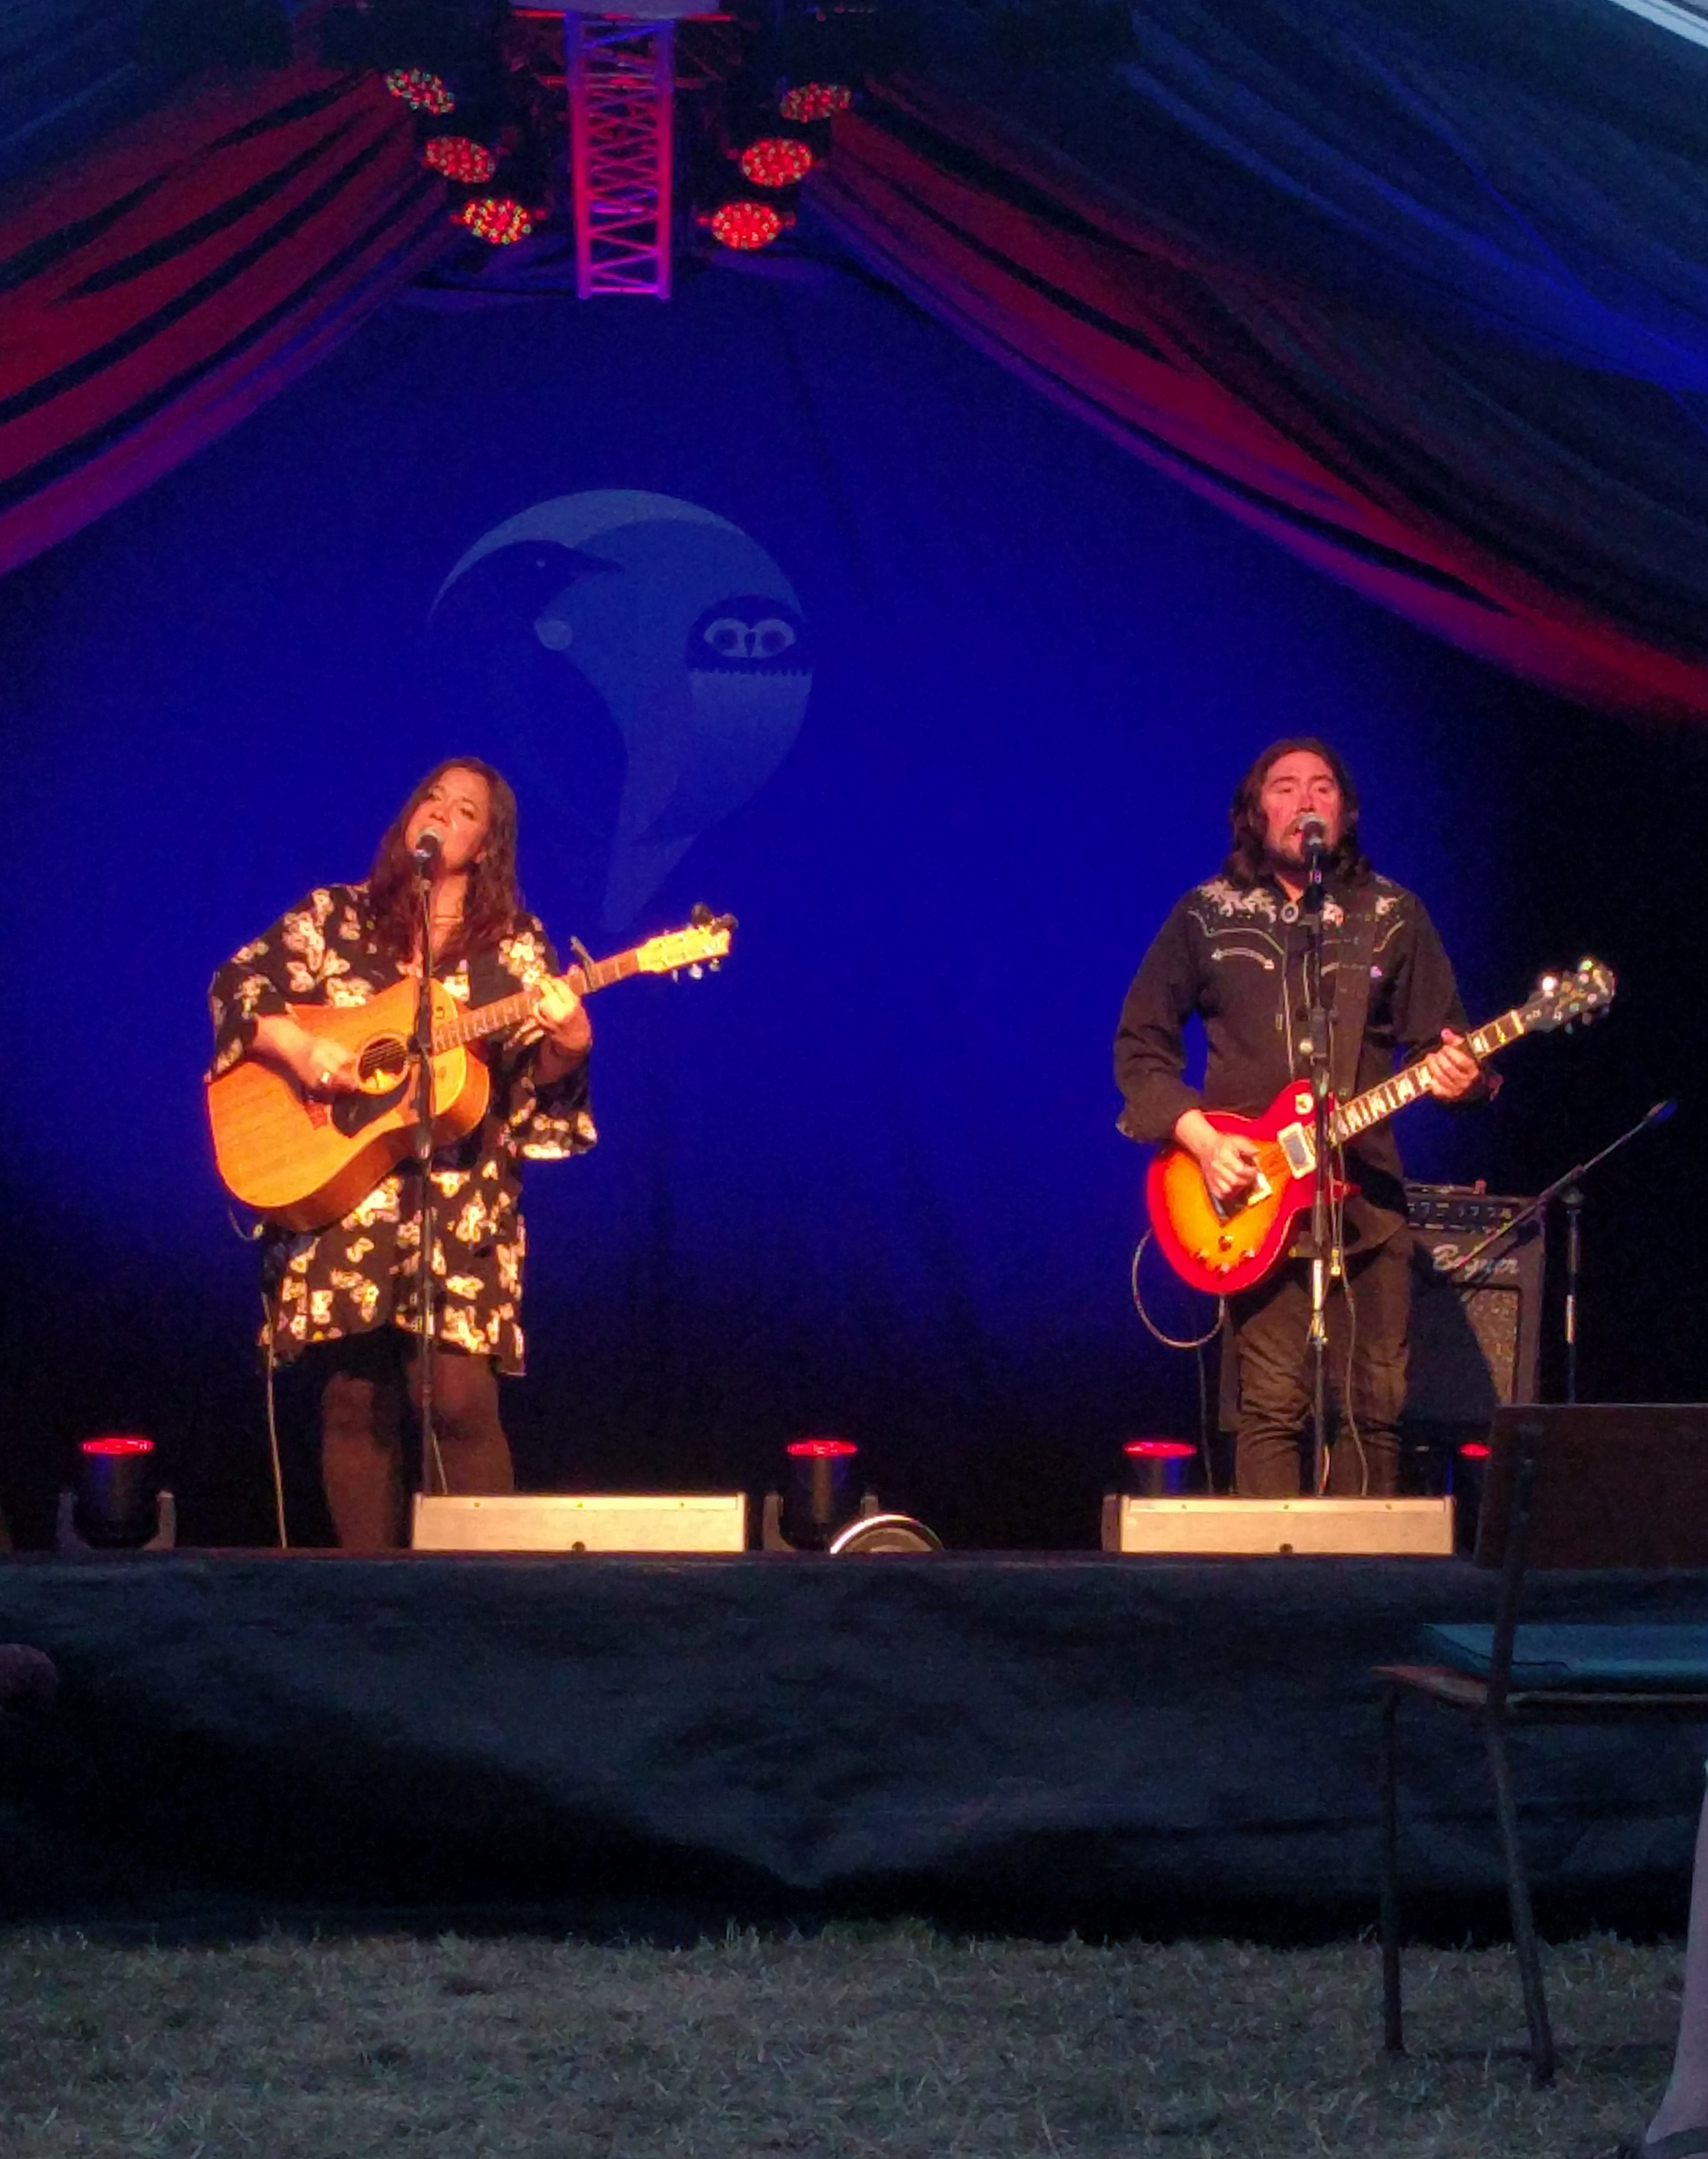 Jo Little and Jared Smith performing at the Whare Flat Folk Festival 17/18